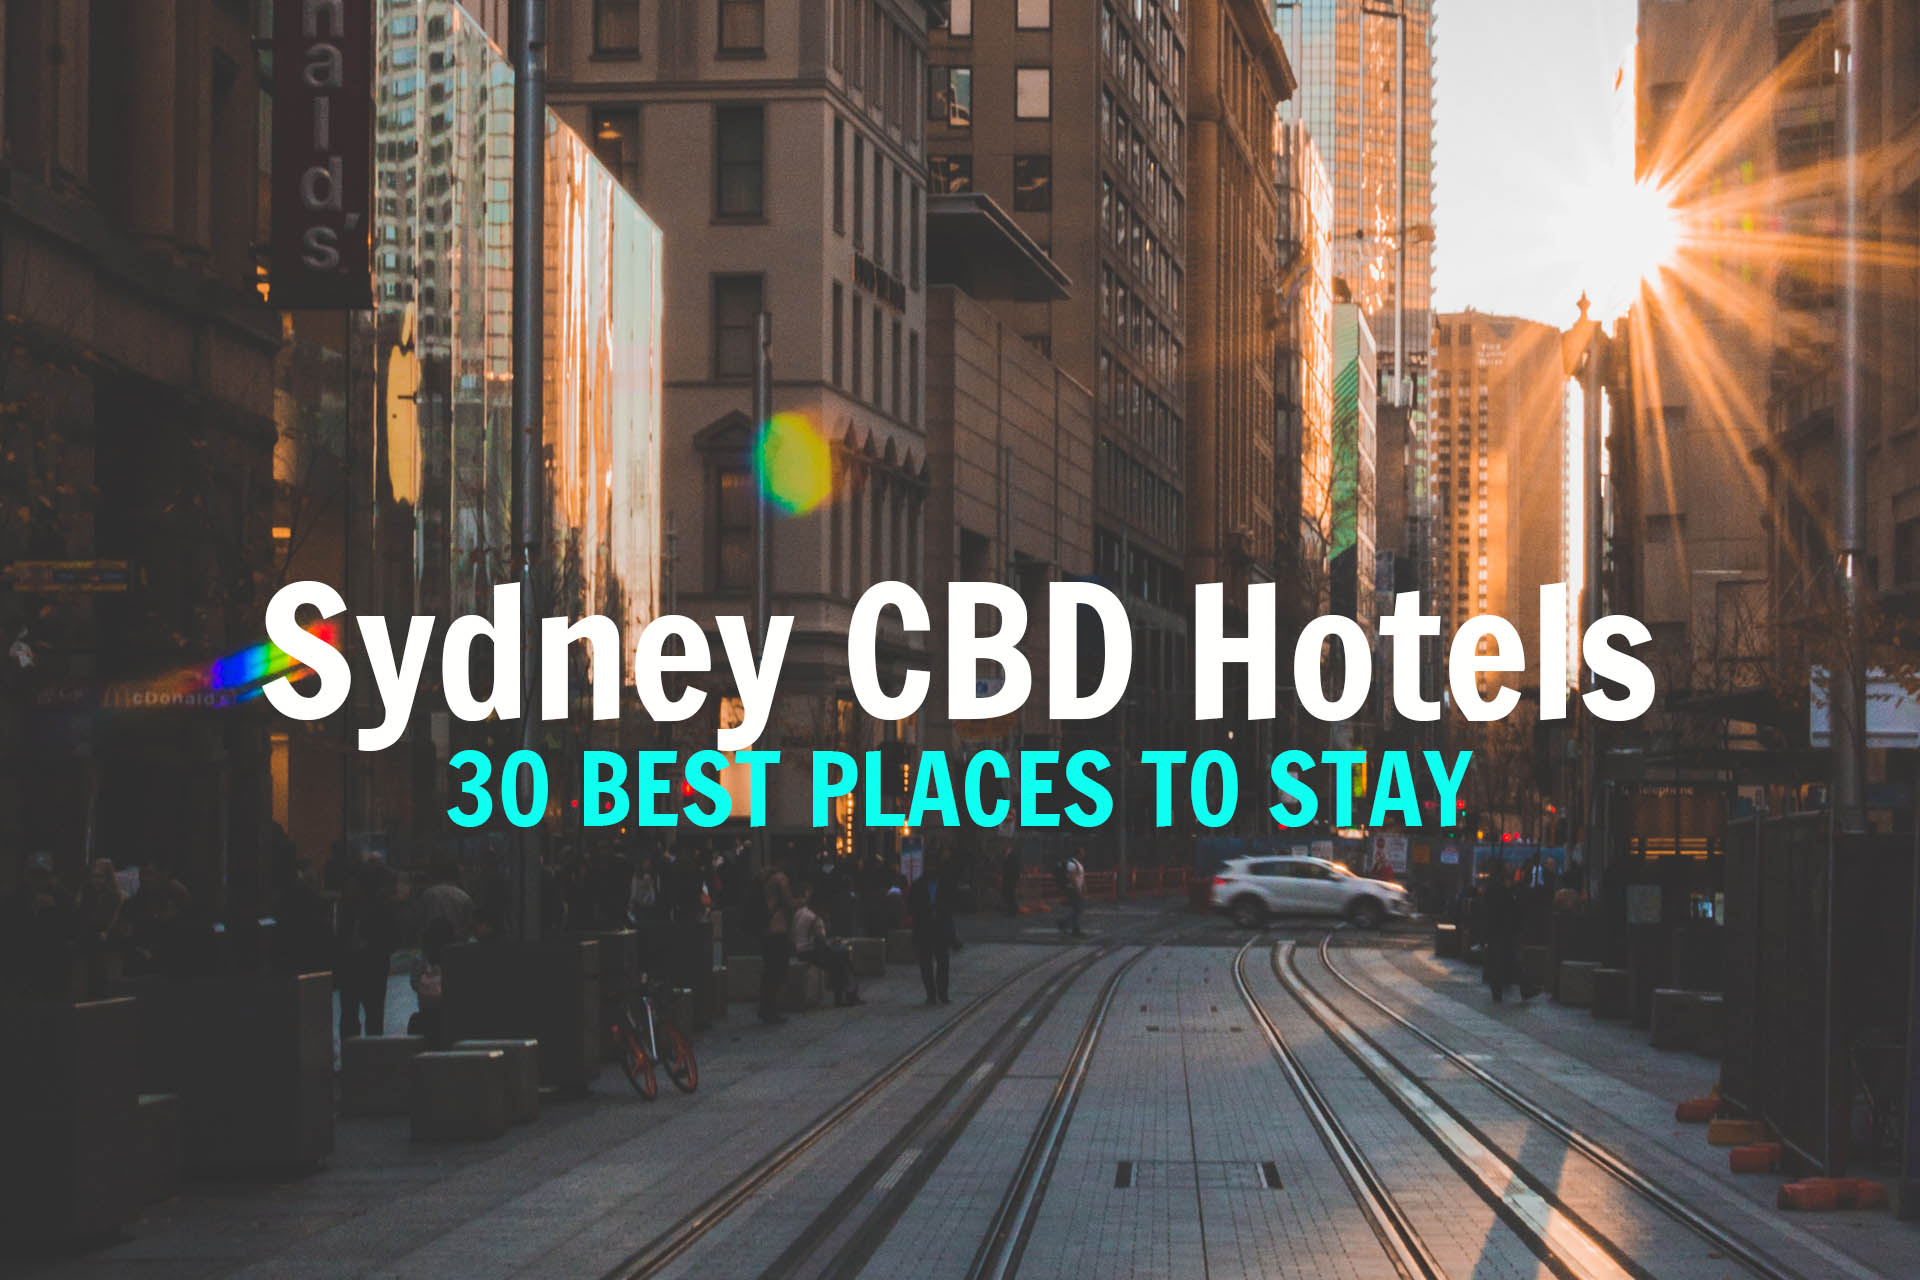 Best-SYDNEY-CBD-HOTELS